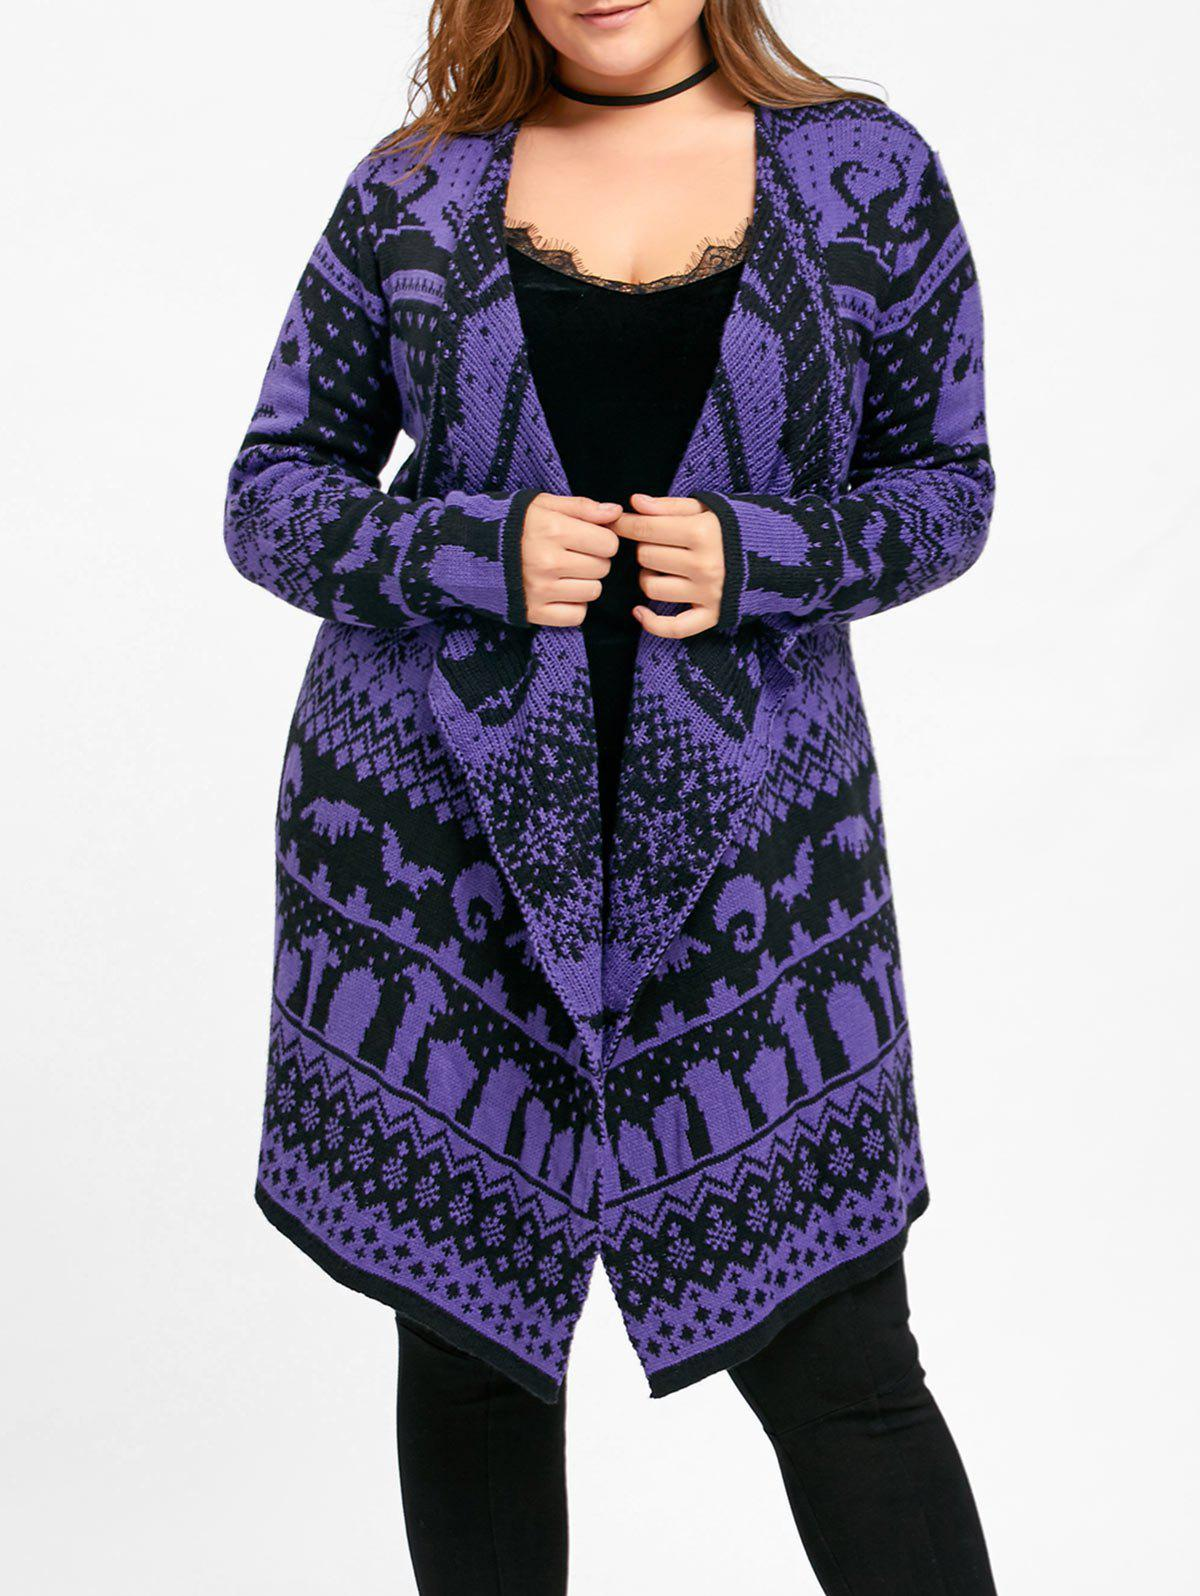 Halloween Plus Size Skull Sweater Drape CardiganWOMEN<br><br>Size: 5XL; Color: PURPLE; Type: Cardigans; Material: Polyester,Spandex; Sleeve Length: Full; Collar: Collarless; Style: Fashion; Season: Fall,Winter; Pattern Type: Others; Weight: 0.4700kg; Package Contents: 1 x Cardigan;